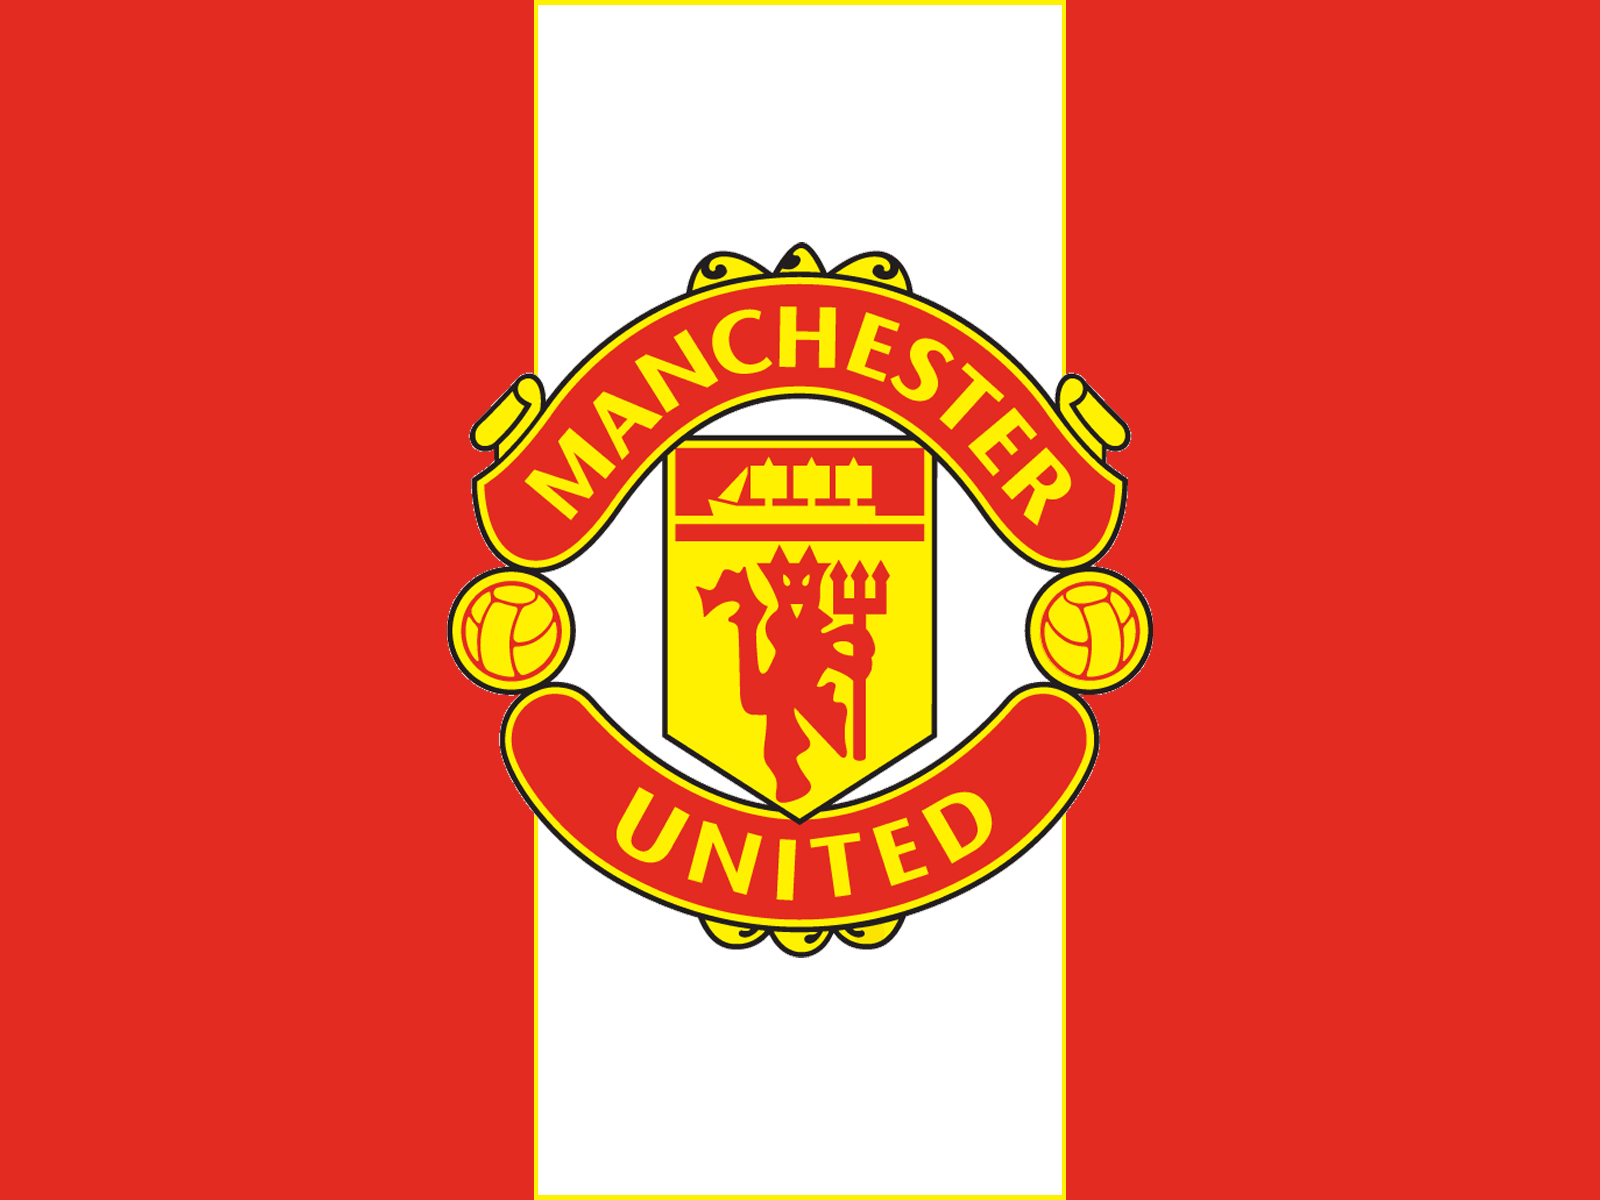 Free Download Manchester United Hd Wallpapers For Android Available In Different 1600x1200 For Your Desktop Mobile Tablet Explore 50 Manchester United Hd Wallpapers Manchester United Wallpaper Manchester United Logo